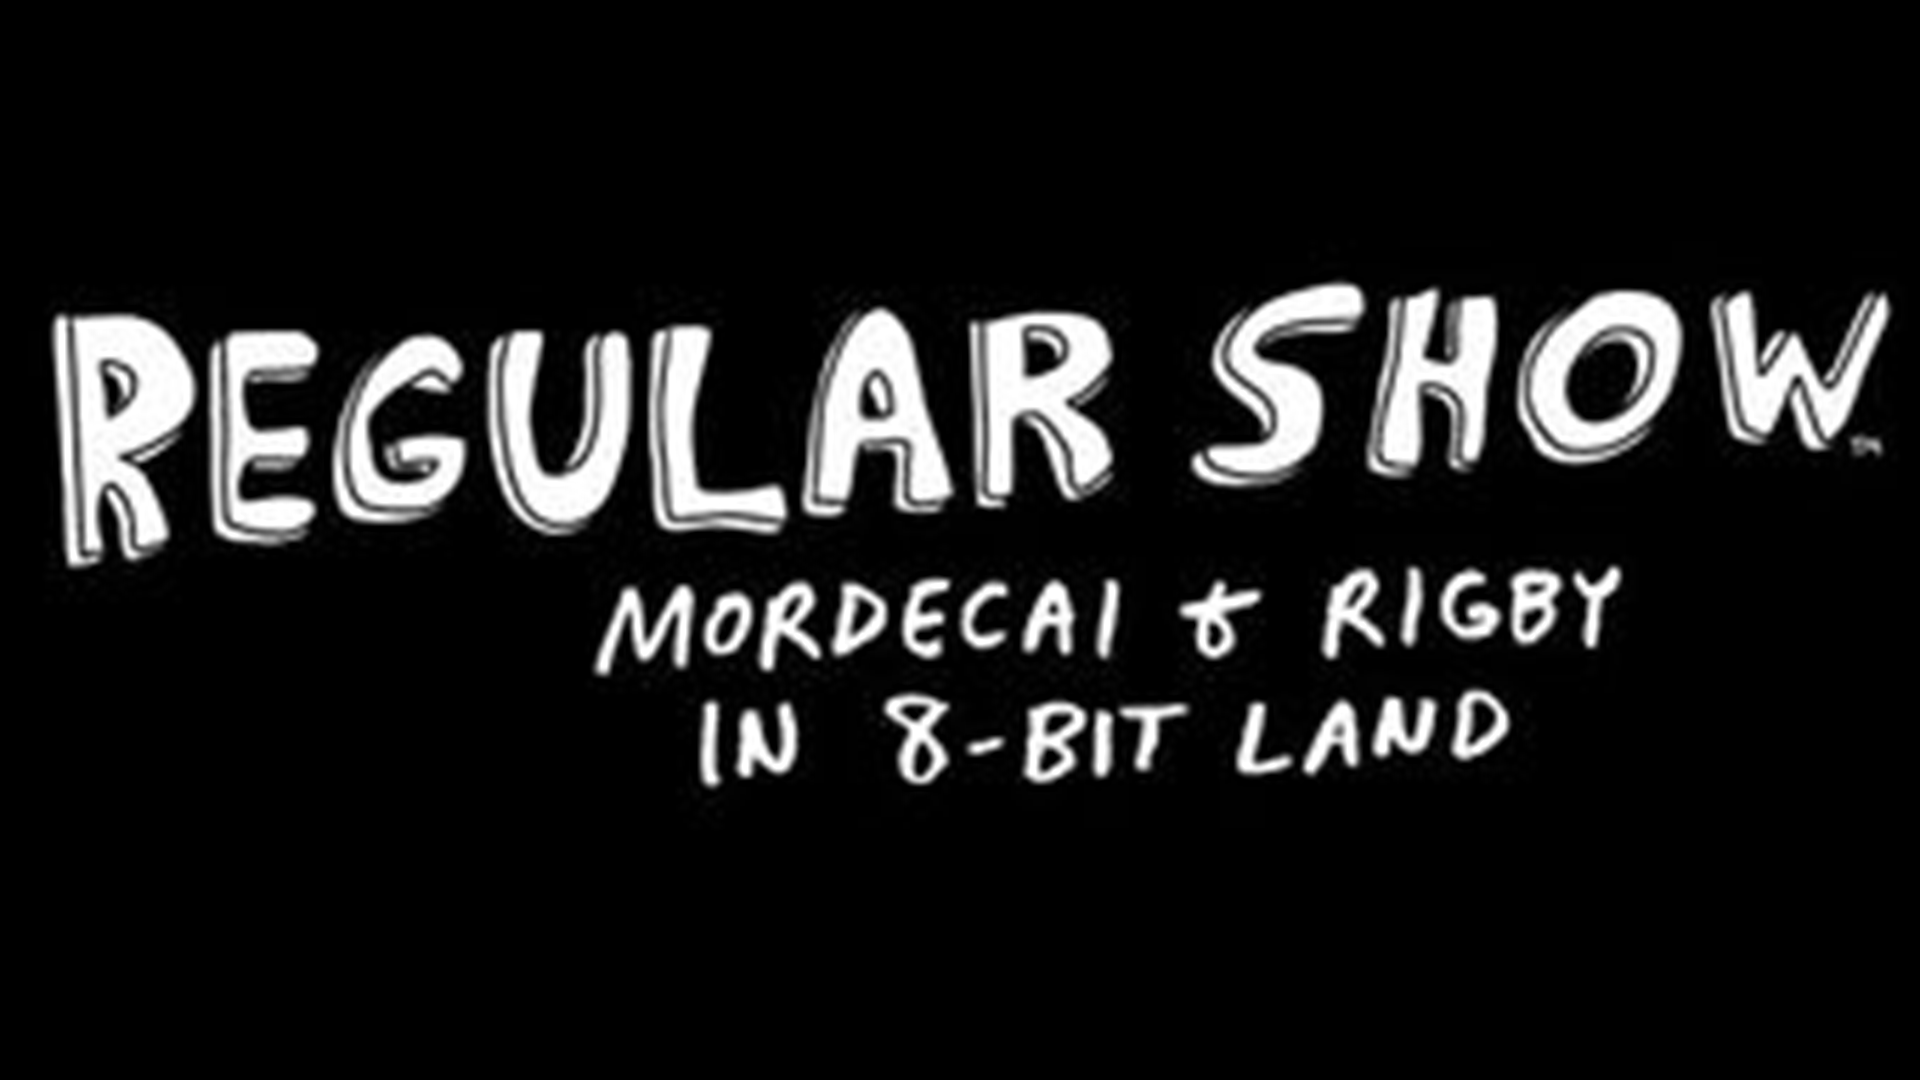 Regular Show: Mordecai and Rigby in 8-Bit Land Logo